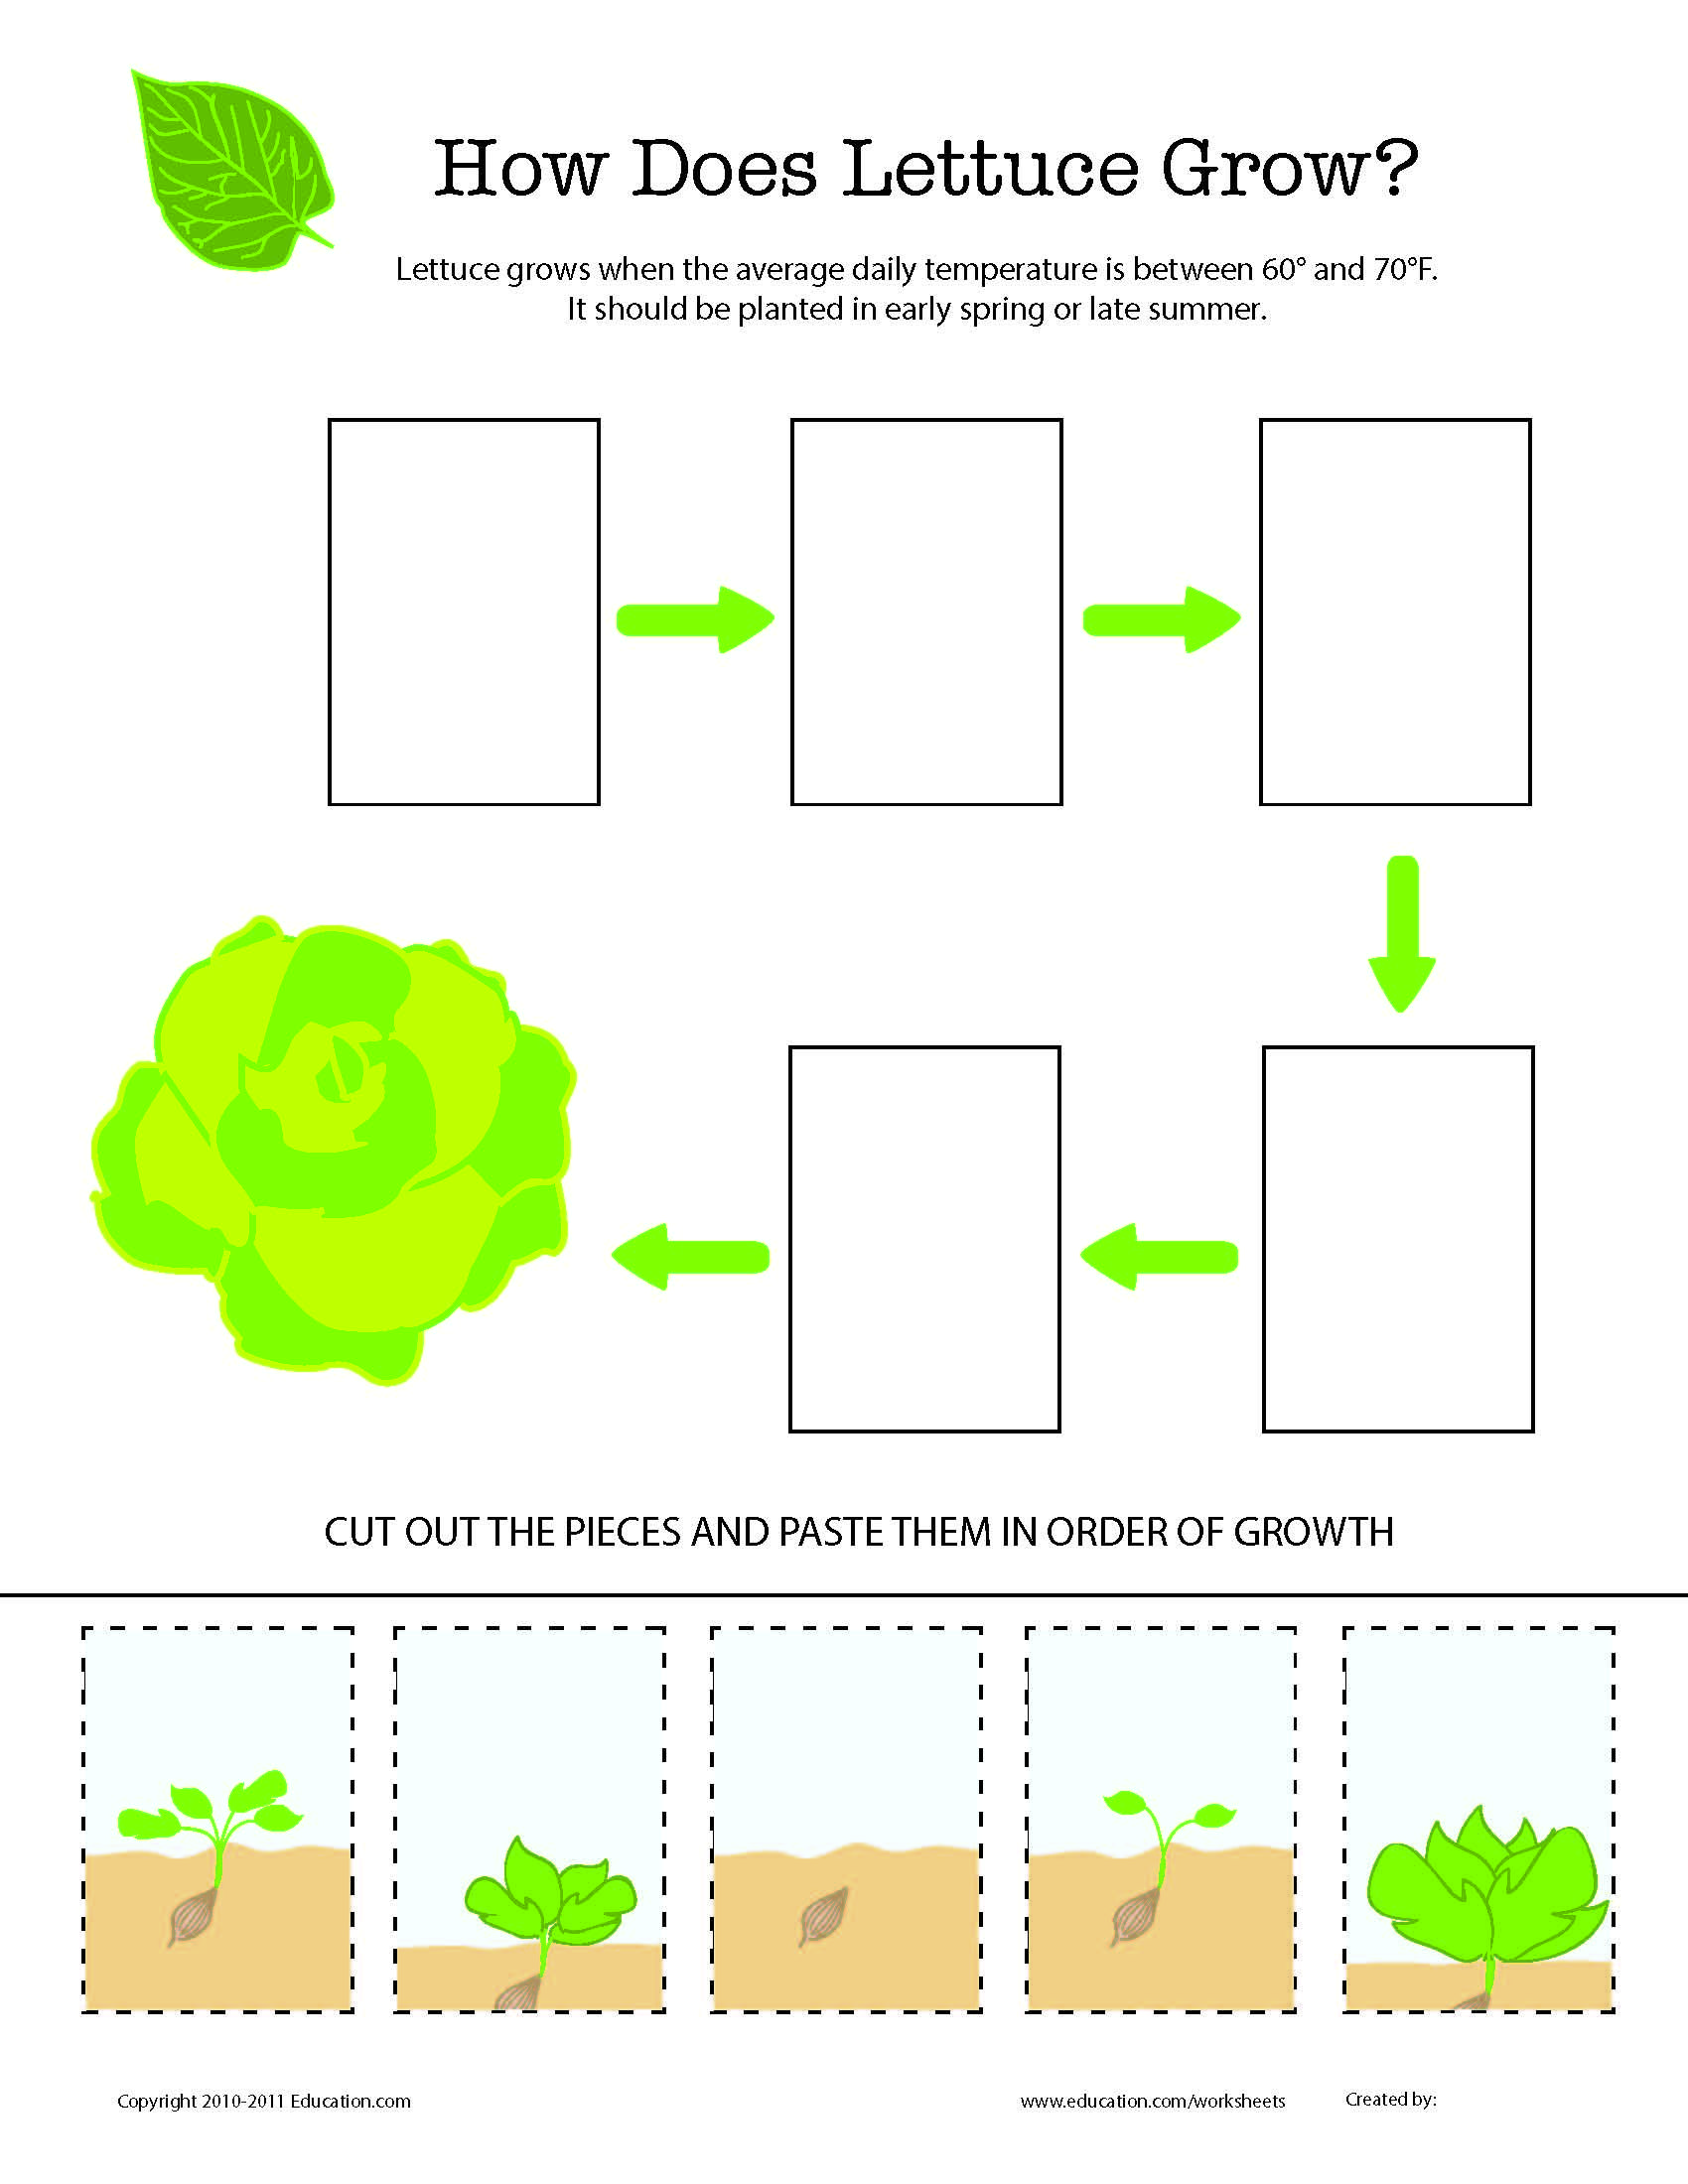 worksheet Stages Of Plant Growth For Kids Worksheets how does it grow lettuce worksheets and kindergarten great worksheet for or 1st grade from www education com